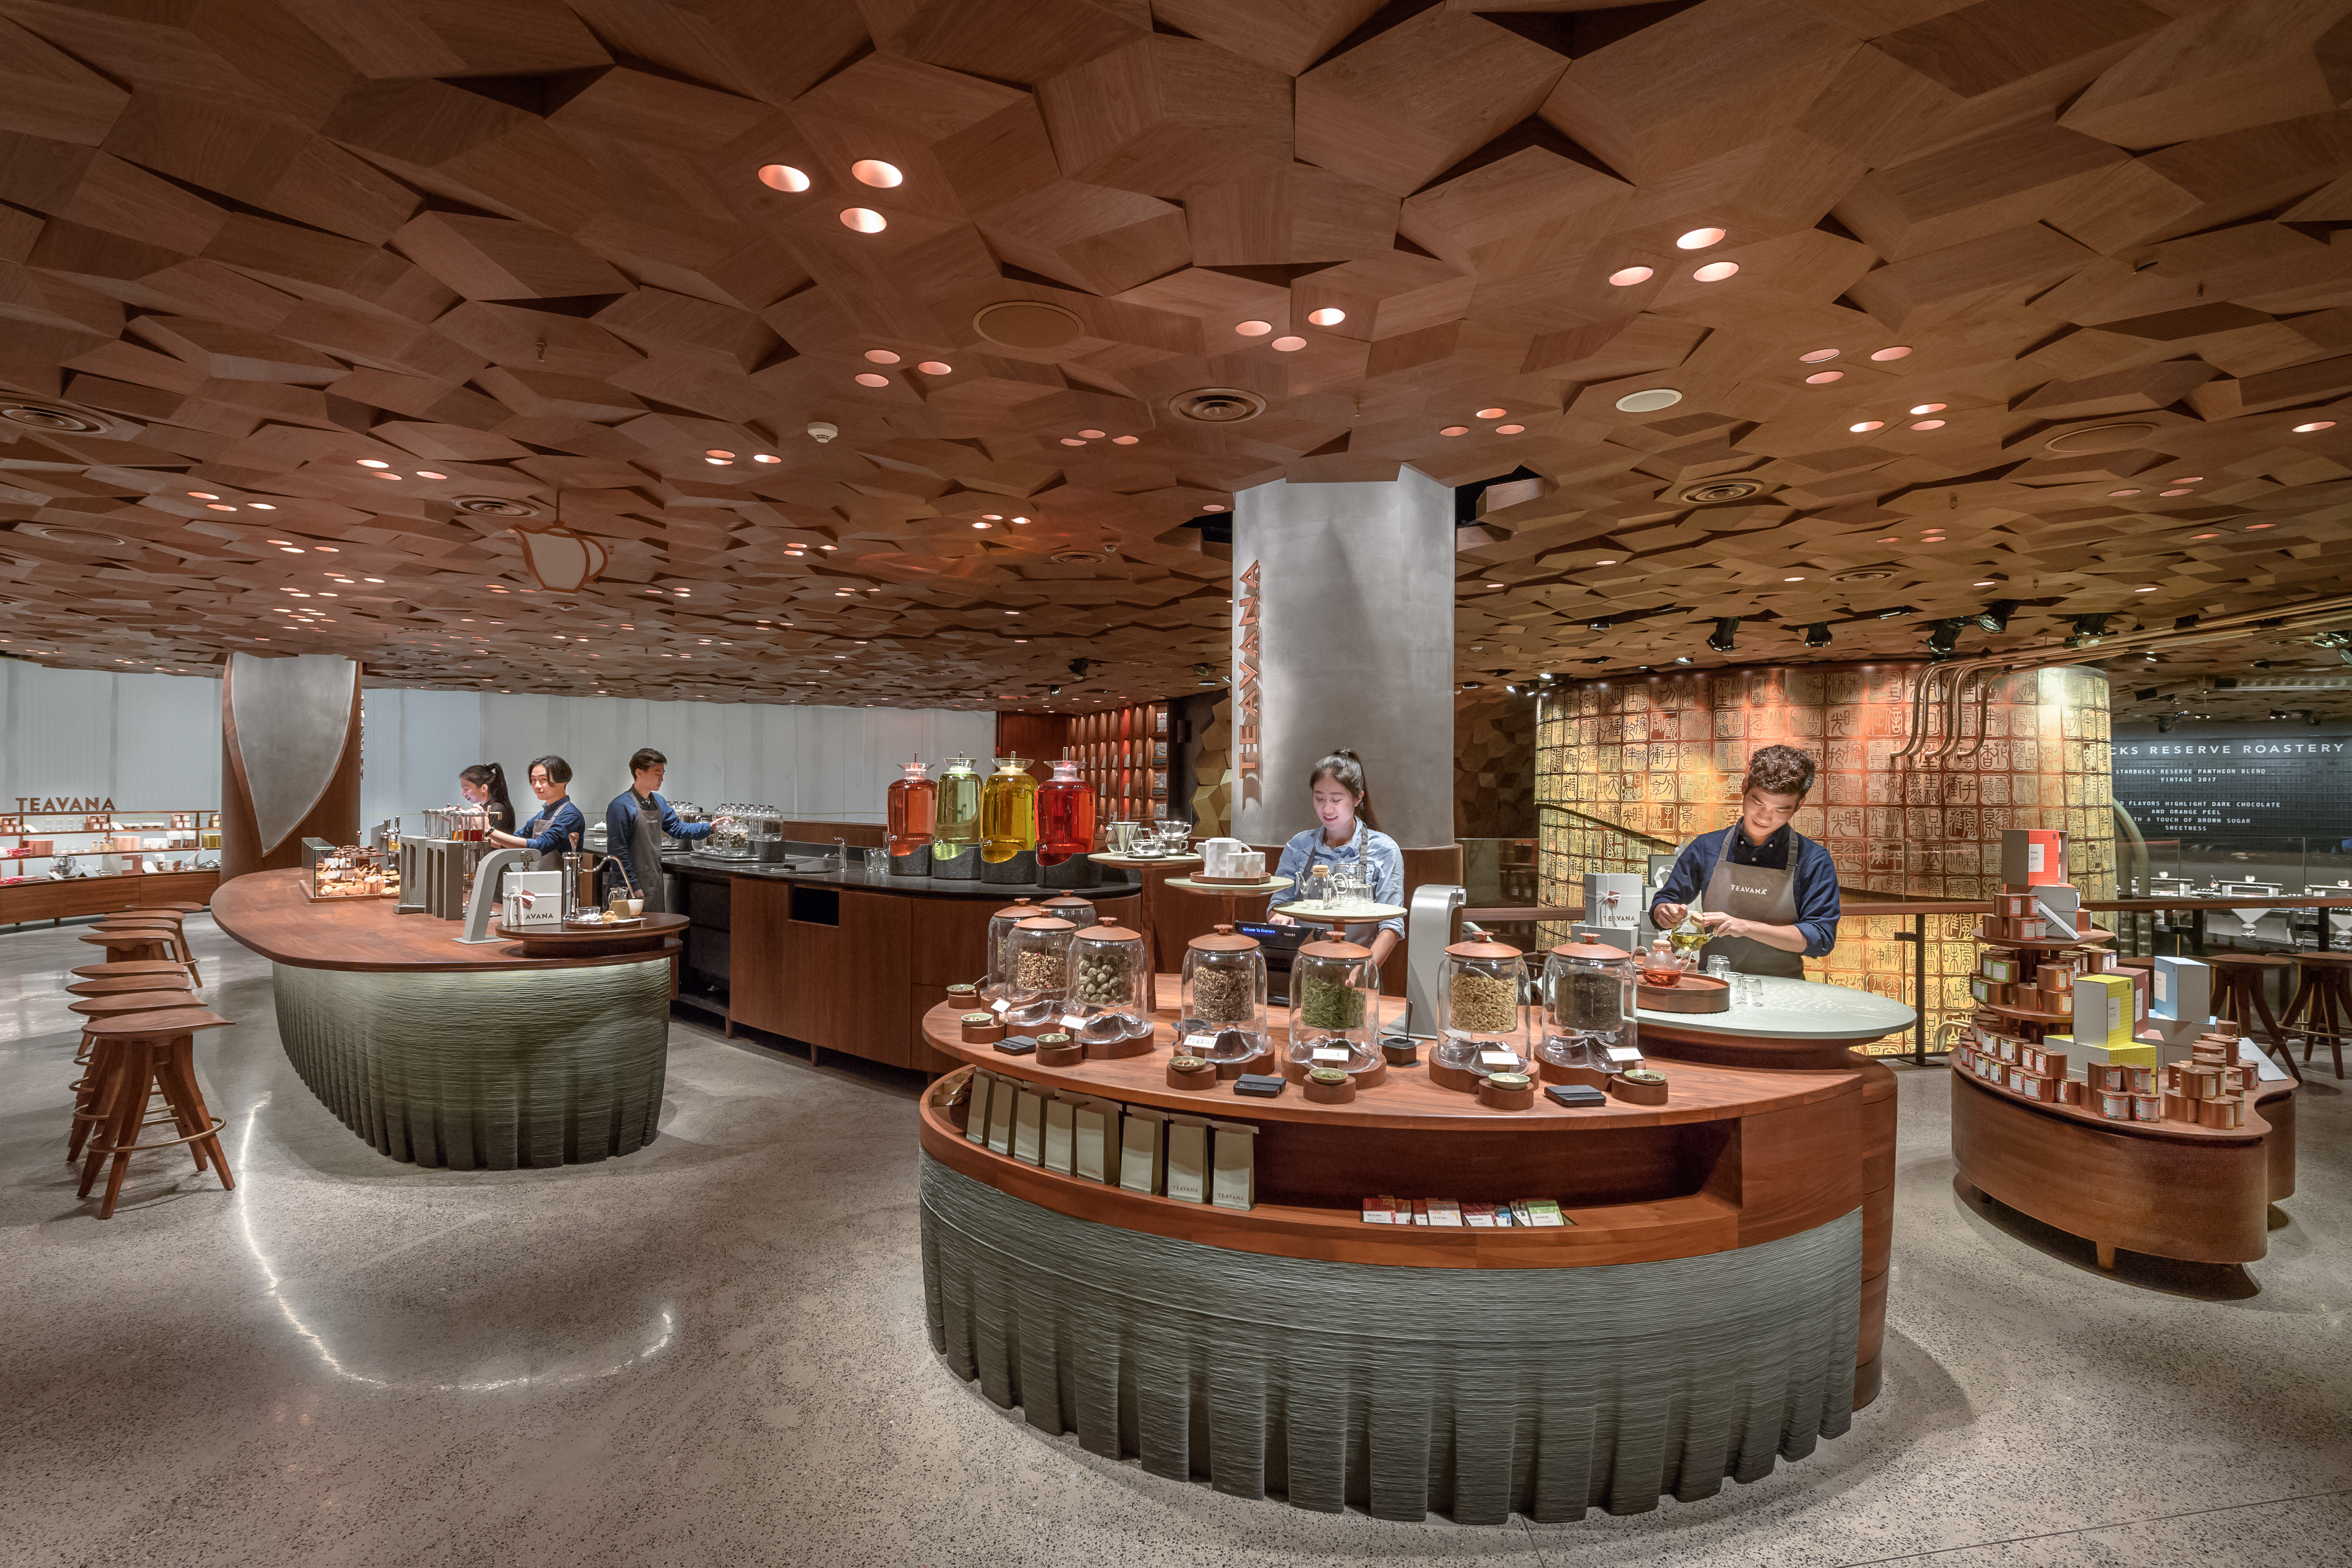 Officially the largest, most beautiful Starbucks® location in the world at nearly 30,000 square feet (2,700 square meters). The Starbucks Reserve Roastery Shanghai is twice the size of the flagship Reserve® Roastery in Seattle and the equivalent of 40 average NYC apartments.{ }(Joshua Trujillo, Starbucks)